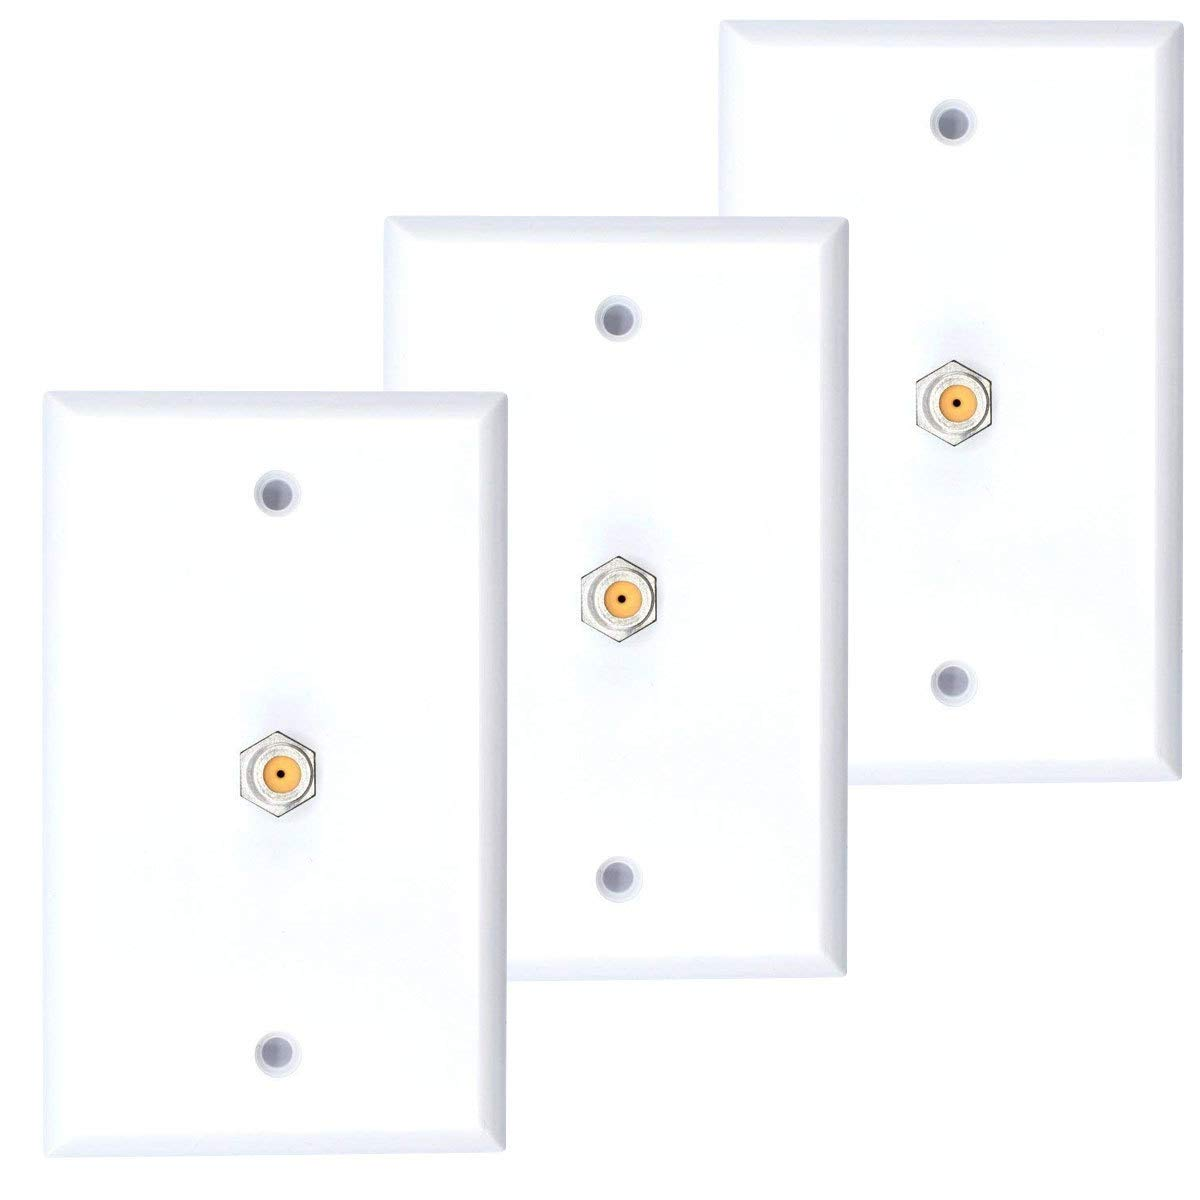 White Coax Cable Wall Plate